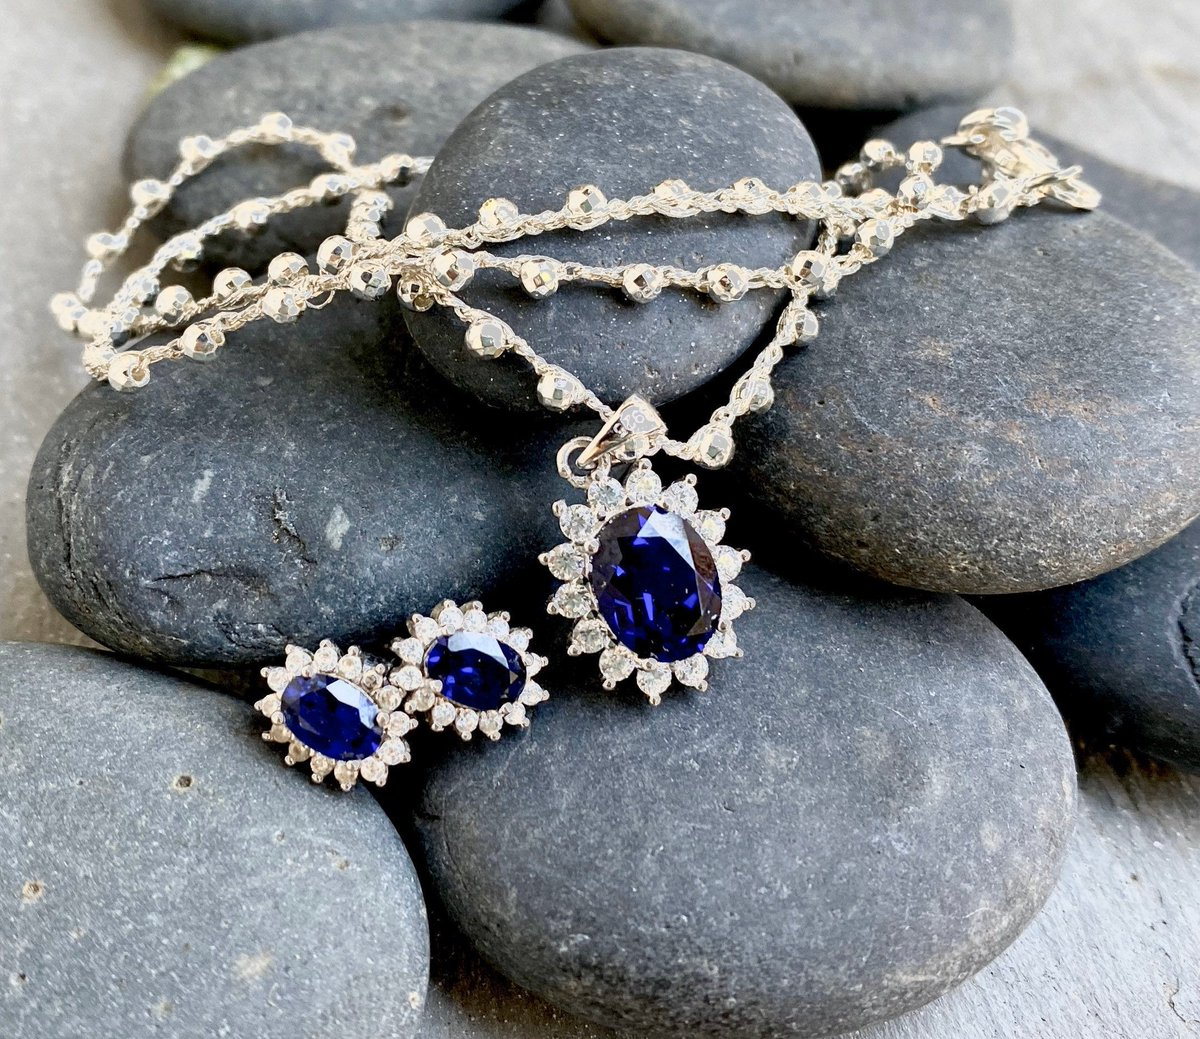 Excited to share the latest addition to my #etsy:Blue Sapphire jewelry s  #jewelrylovers #fashion #fashionblogger #instajewels #fashionnova #lovejewelry #shoppingqueen #shoppingstar #jewelry #jewelrylove #jewelryoftheday #earrings #sterlingsilver #discount #fashionistapic.twitter.com/roADyV69o9